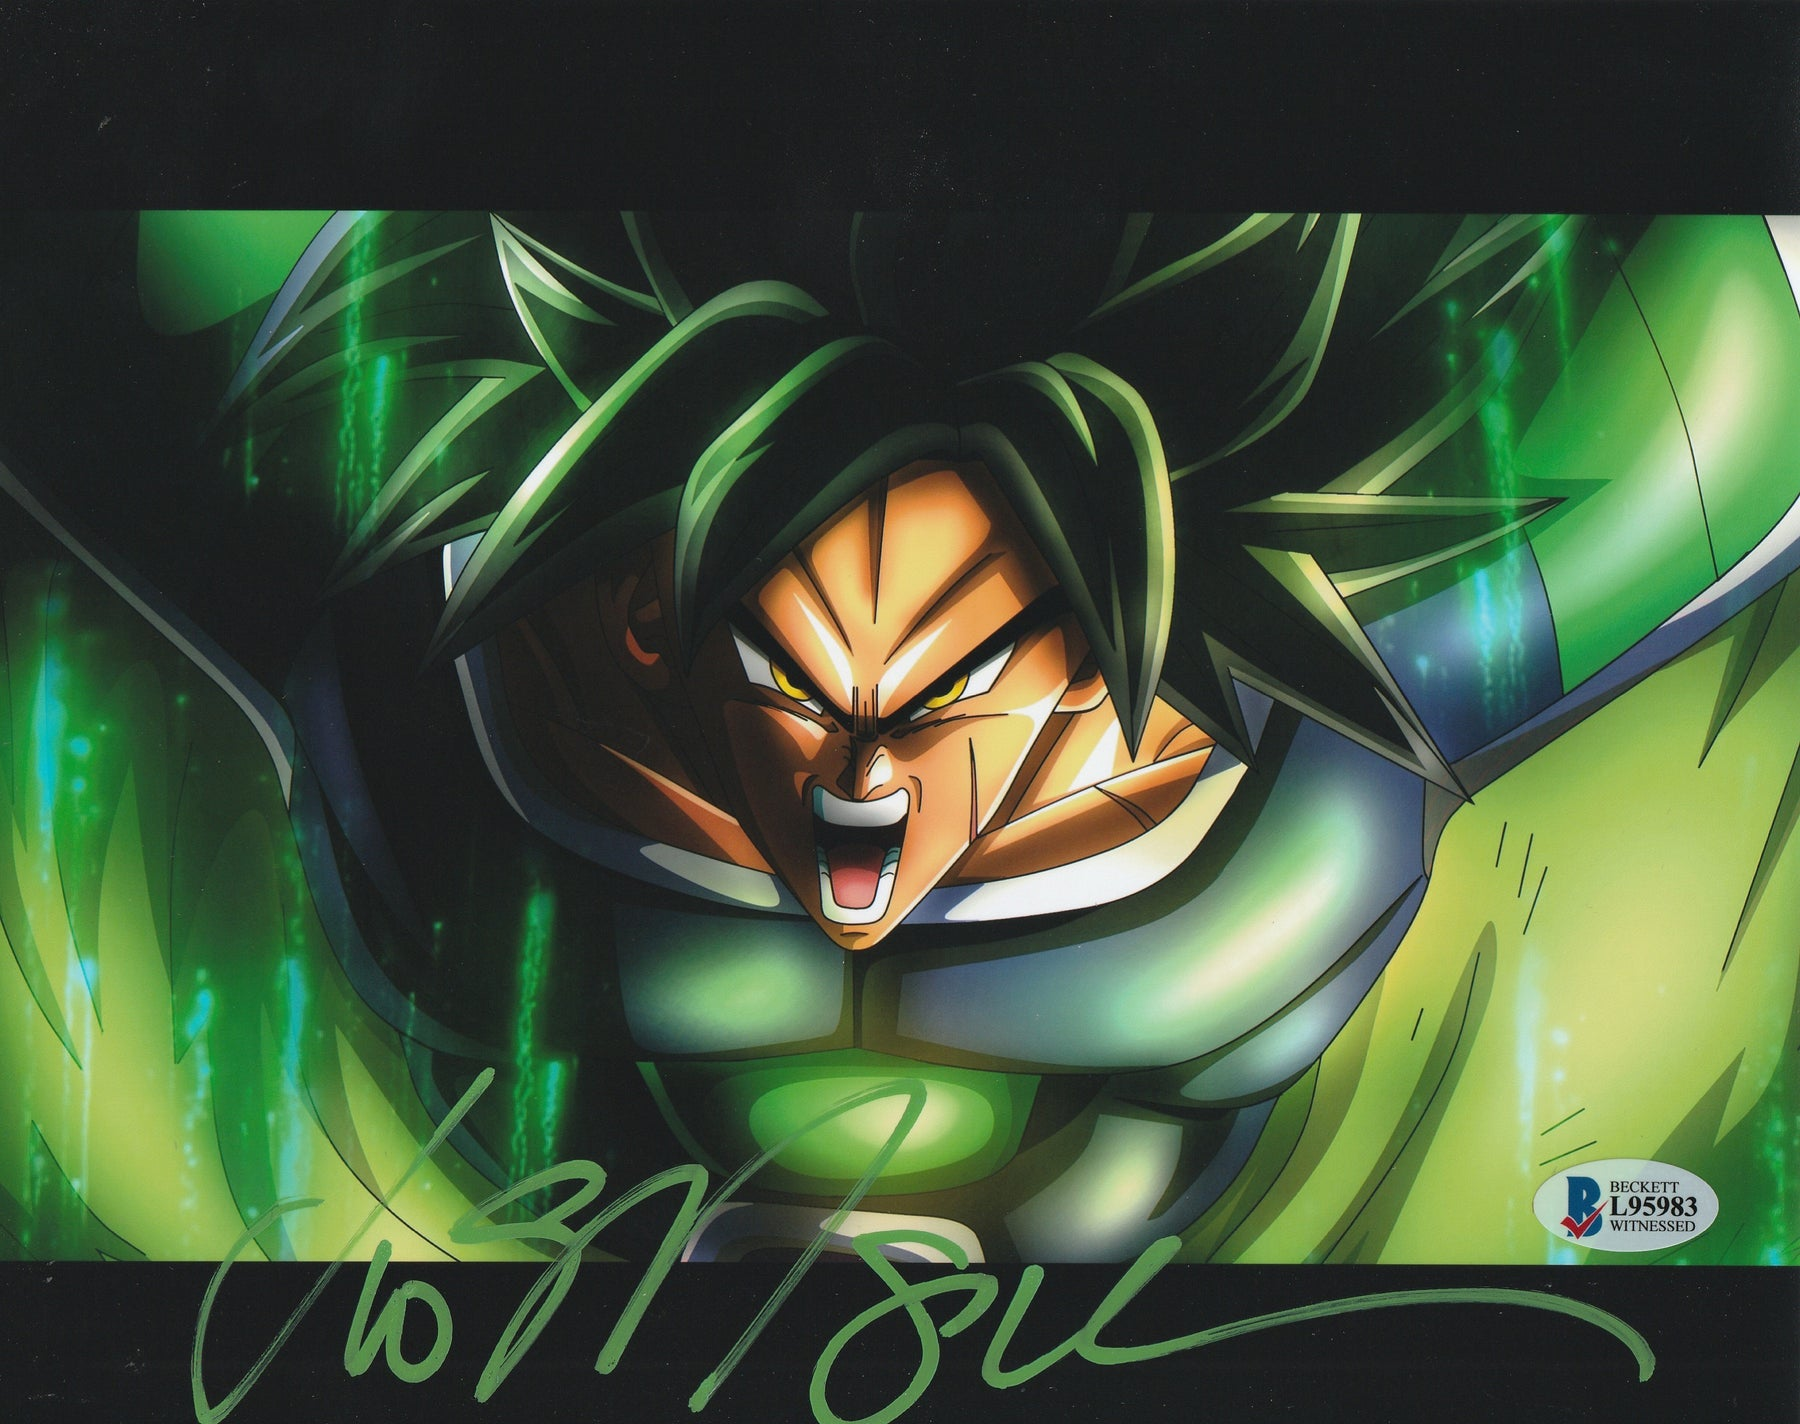 Vic Mignogna Autograph 8x10 Photo Dragon Ball Z Broly Signed BAS COA 4